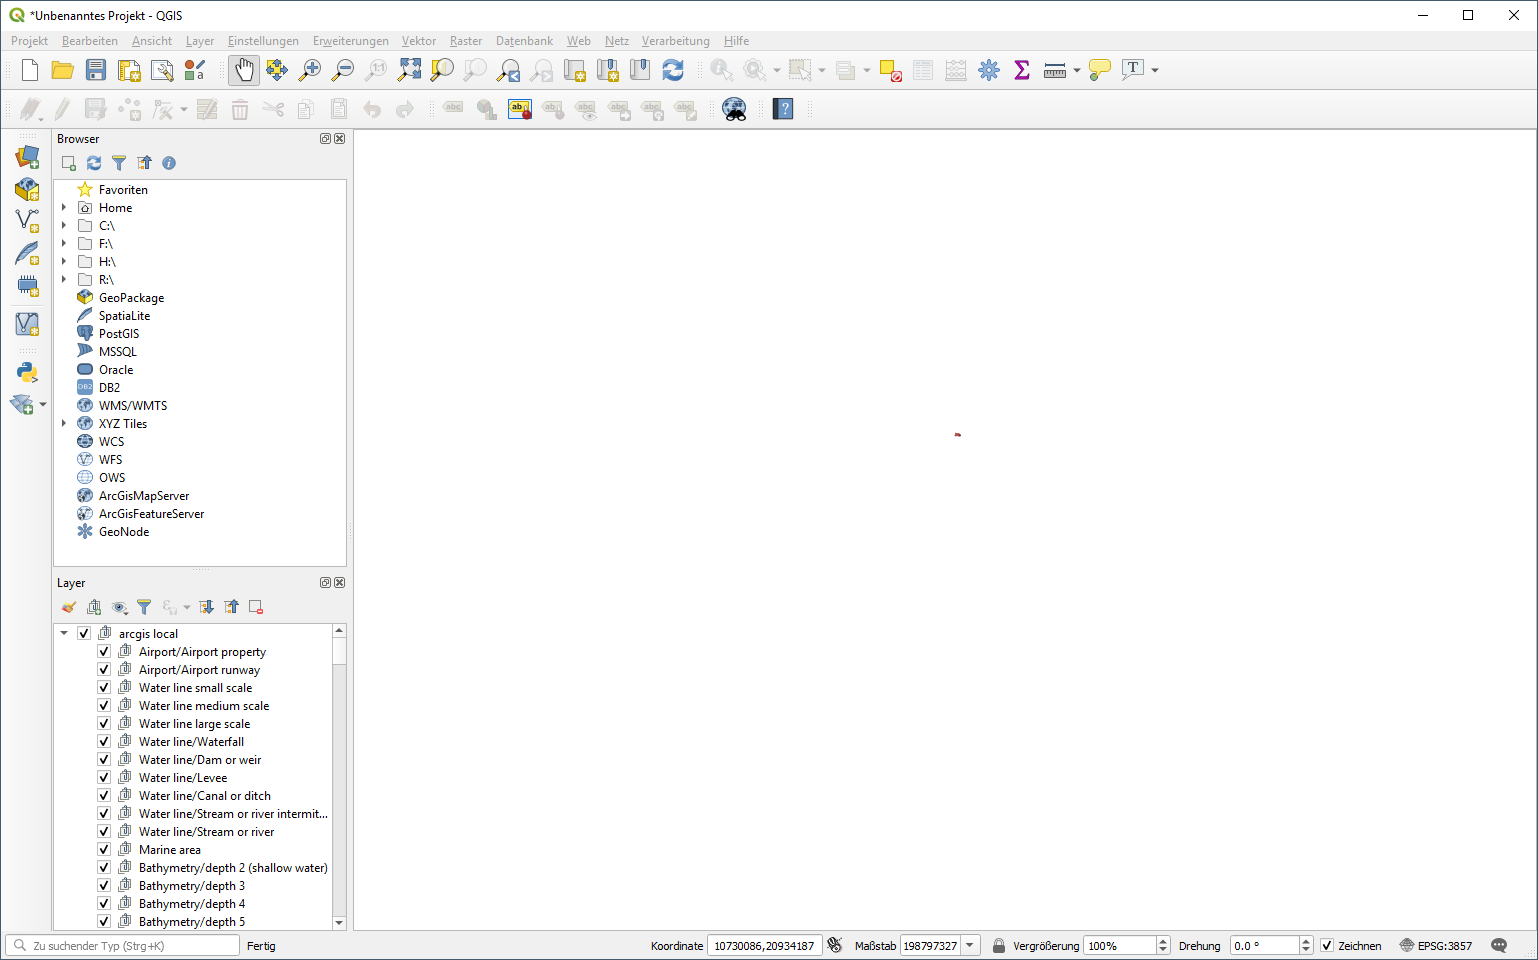 Adding vector tile service from ArcGIS / Esri not working · Issue